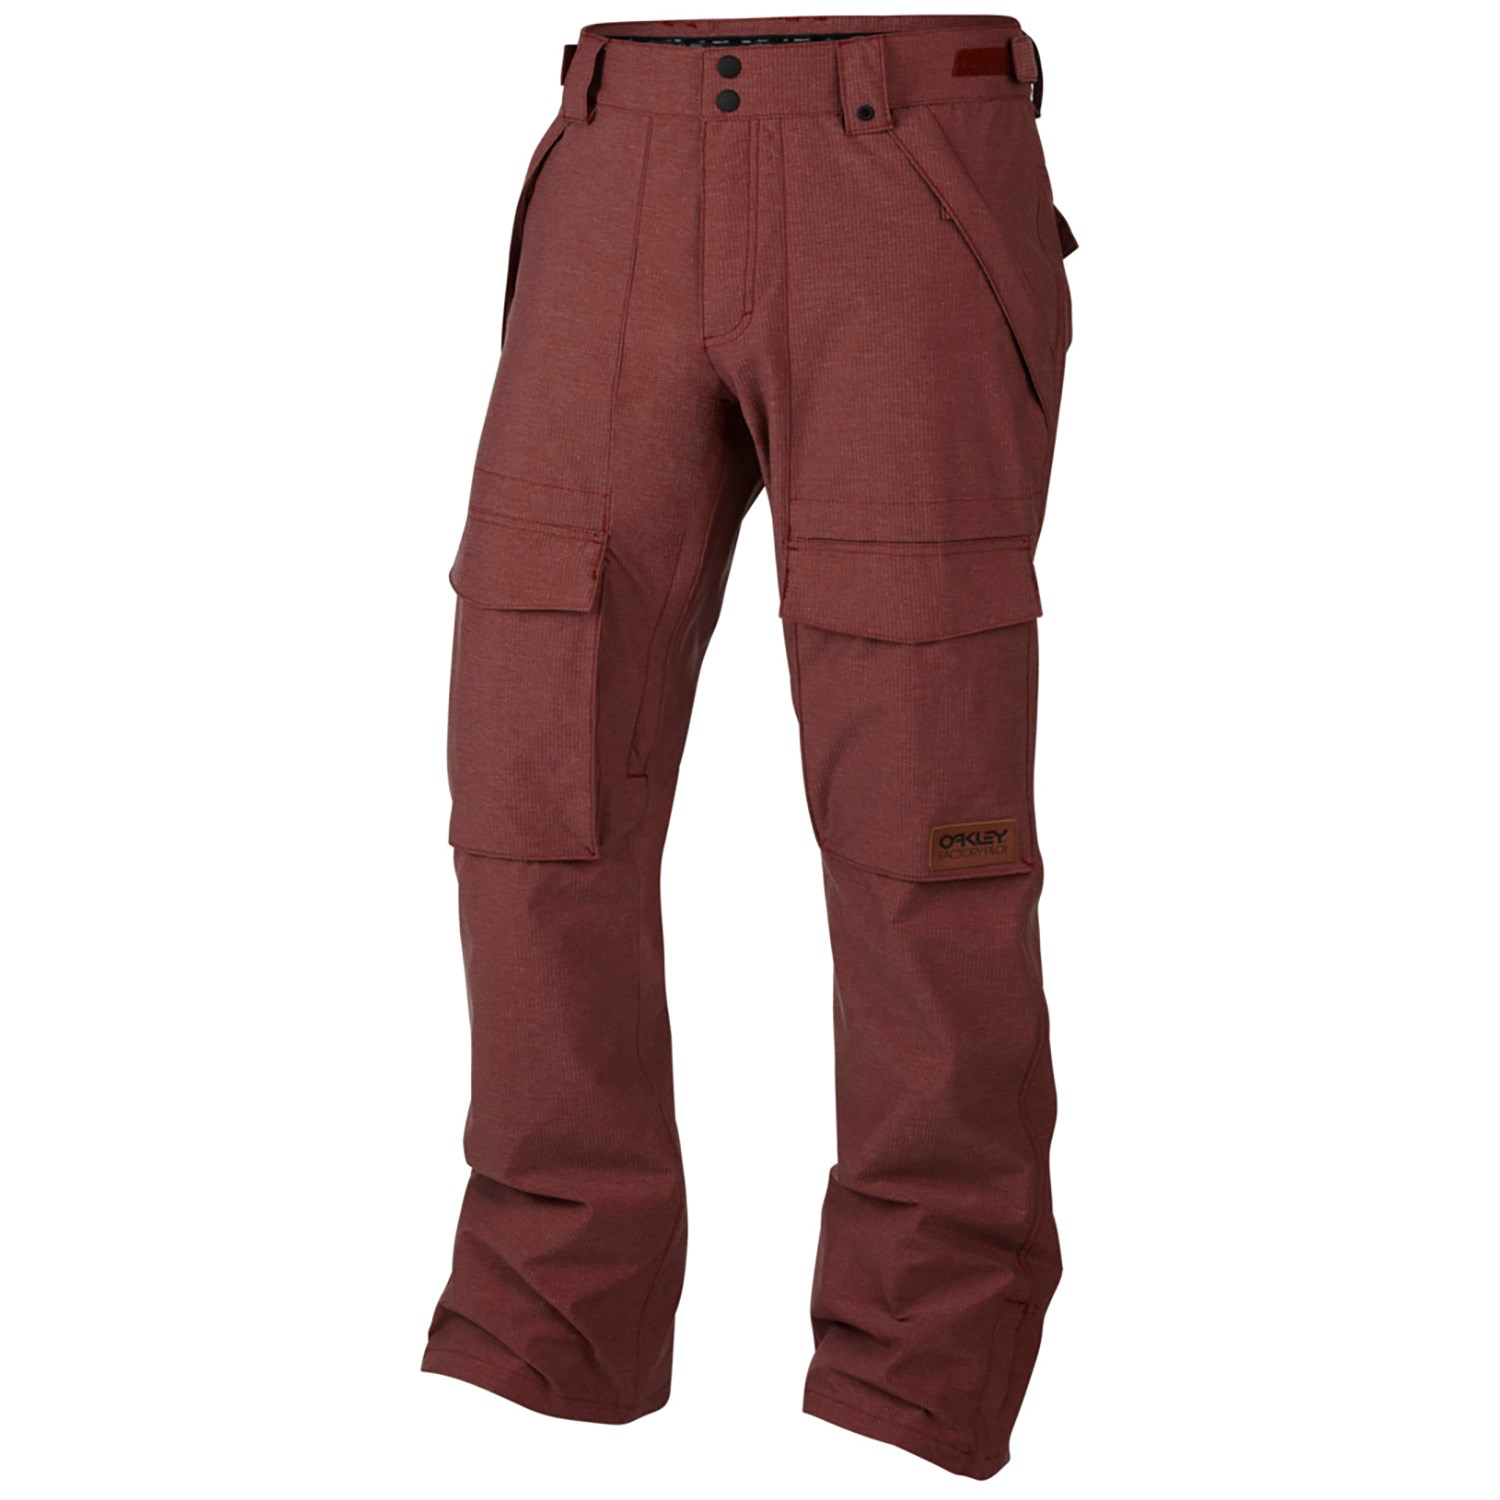 oakley ski pants on sale  oakley hawkeye biozone? pants